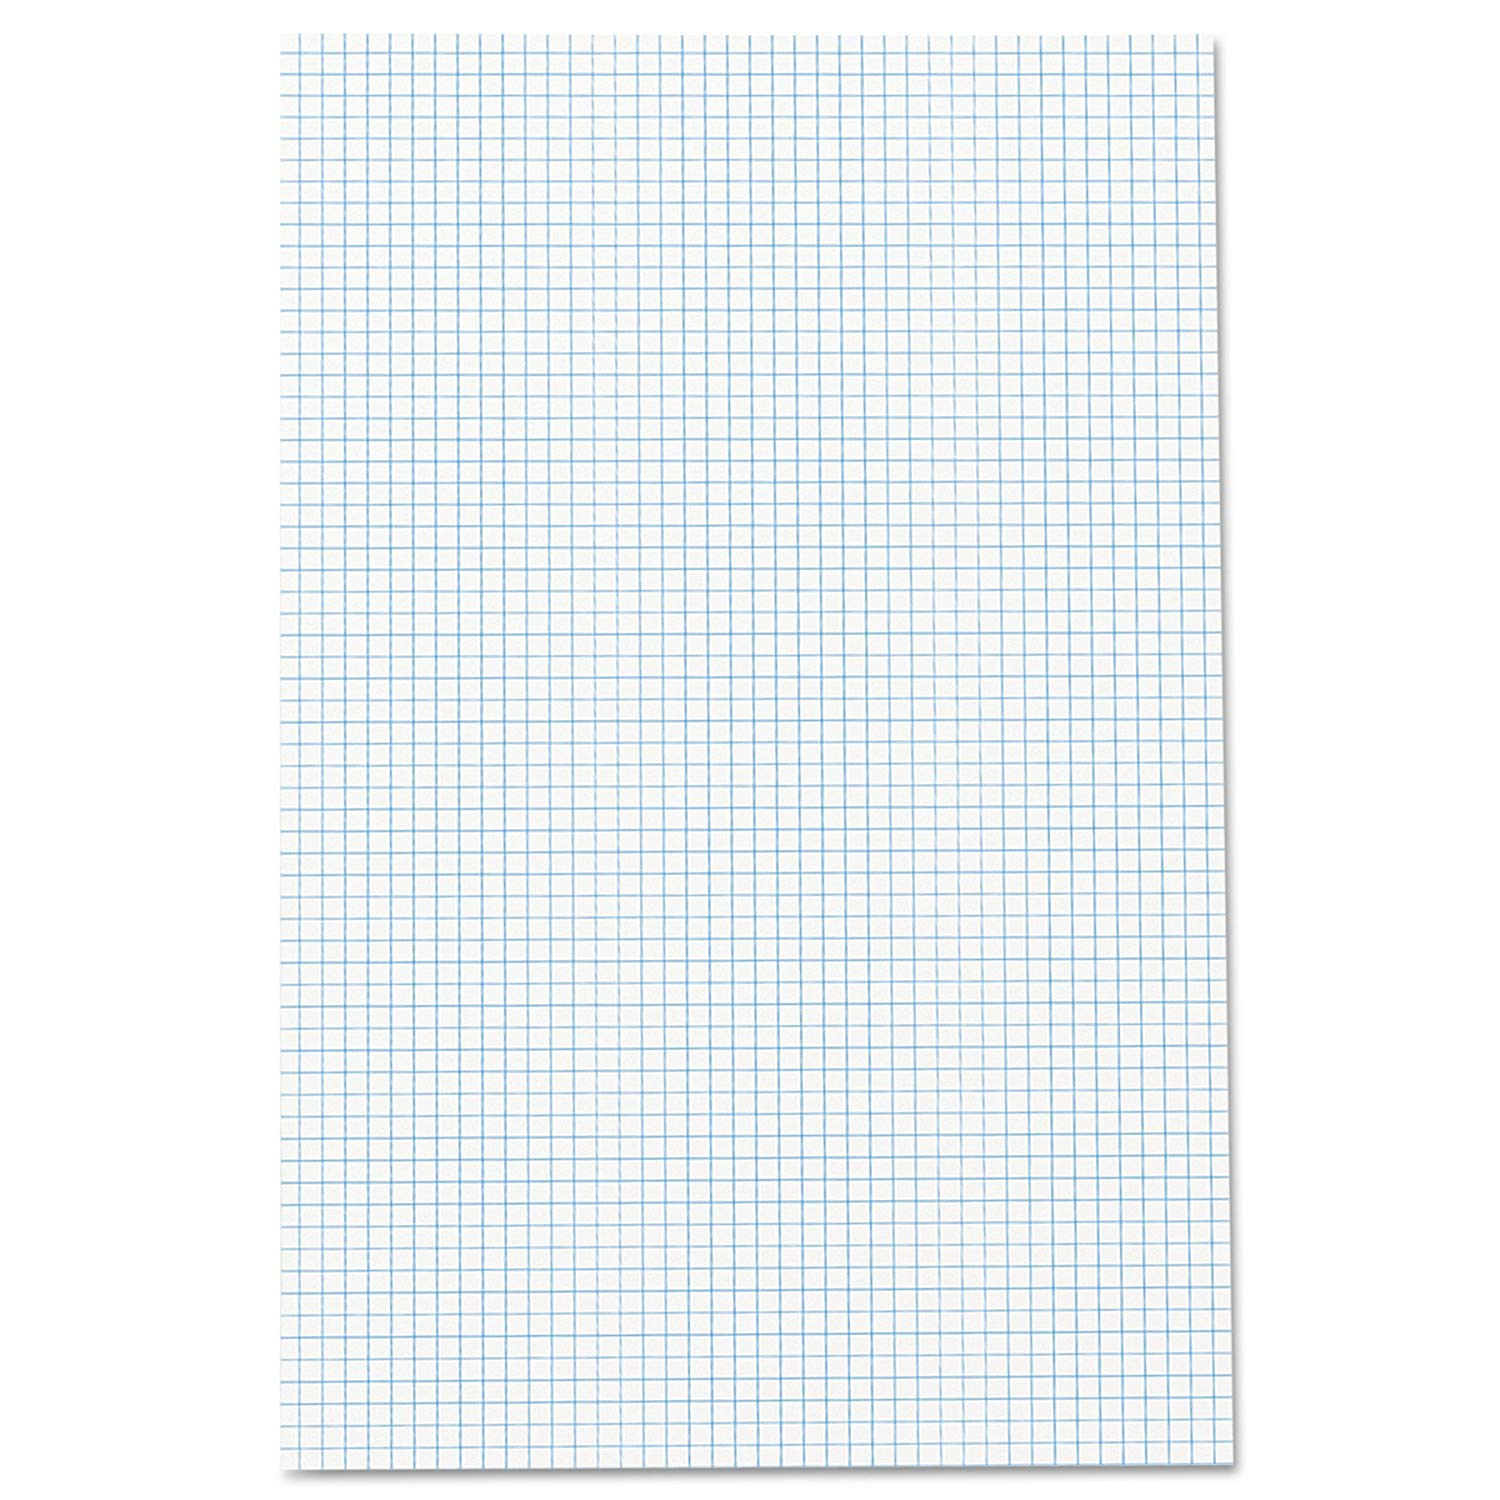 Ampad Quadrille Double Sided Pad, 11 x 17, White, 4x4 Quad Rule, 50 Sheets, 10 Pads, 500 Sheets Total (22-037) by Ampad (Image #2)